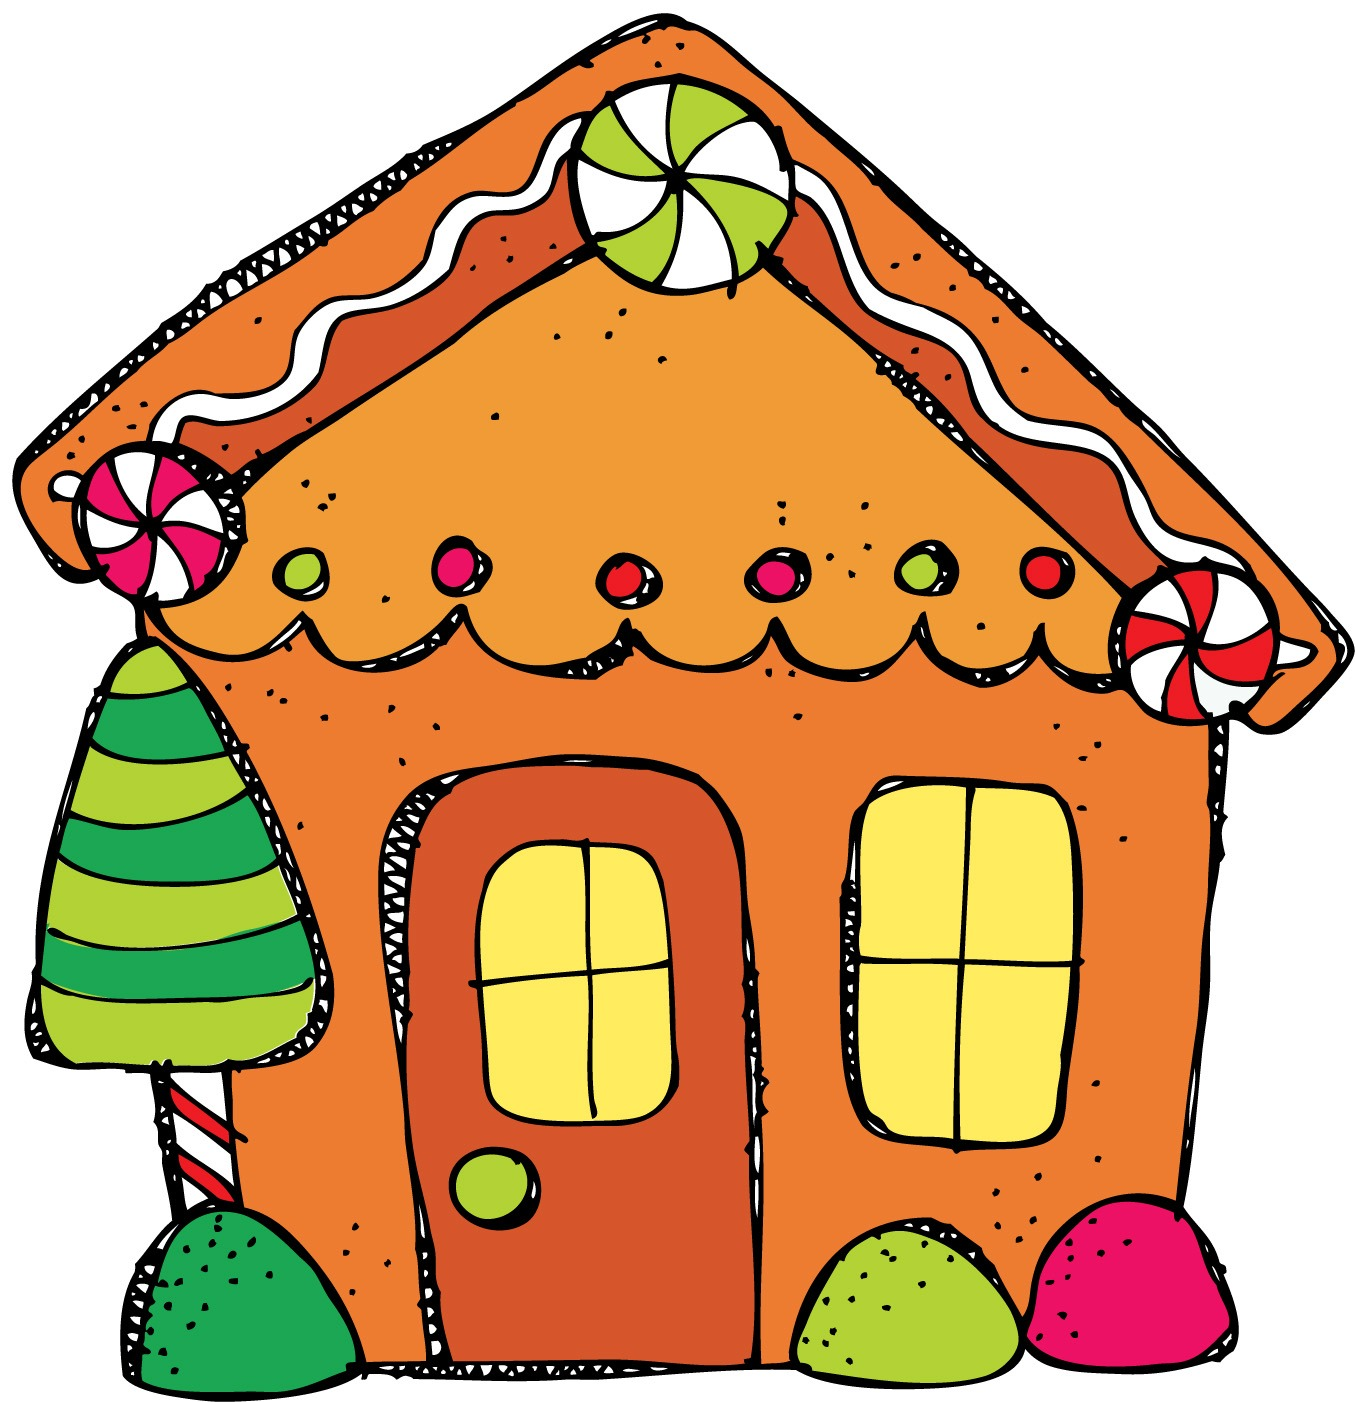 Gingerbread House Clip Art - ClipArt Best